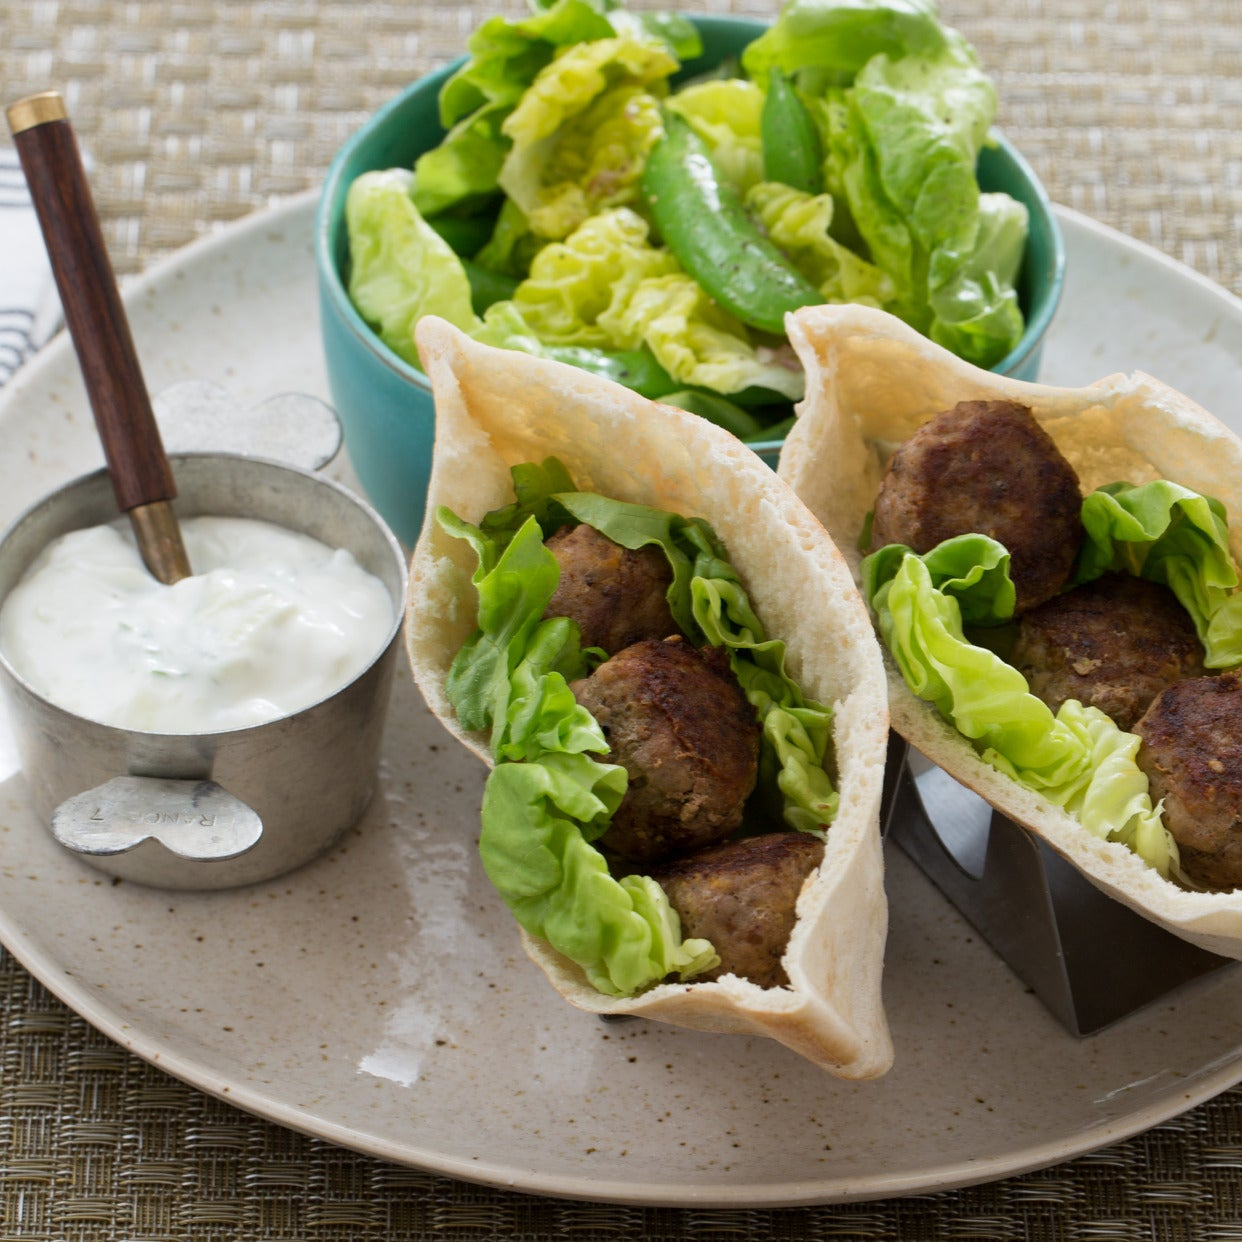 Spiced Turkey Meatball Pitas with Sugar Snap Pea & Bibb Lettuce Salad